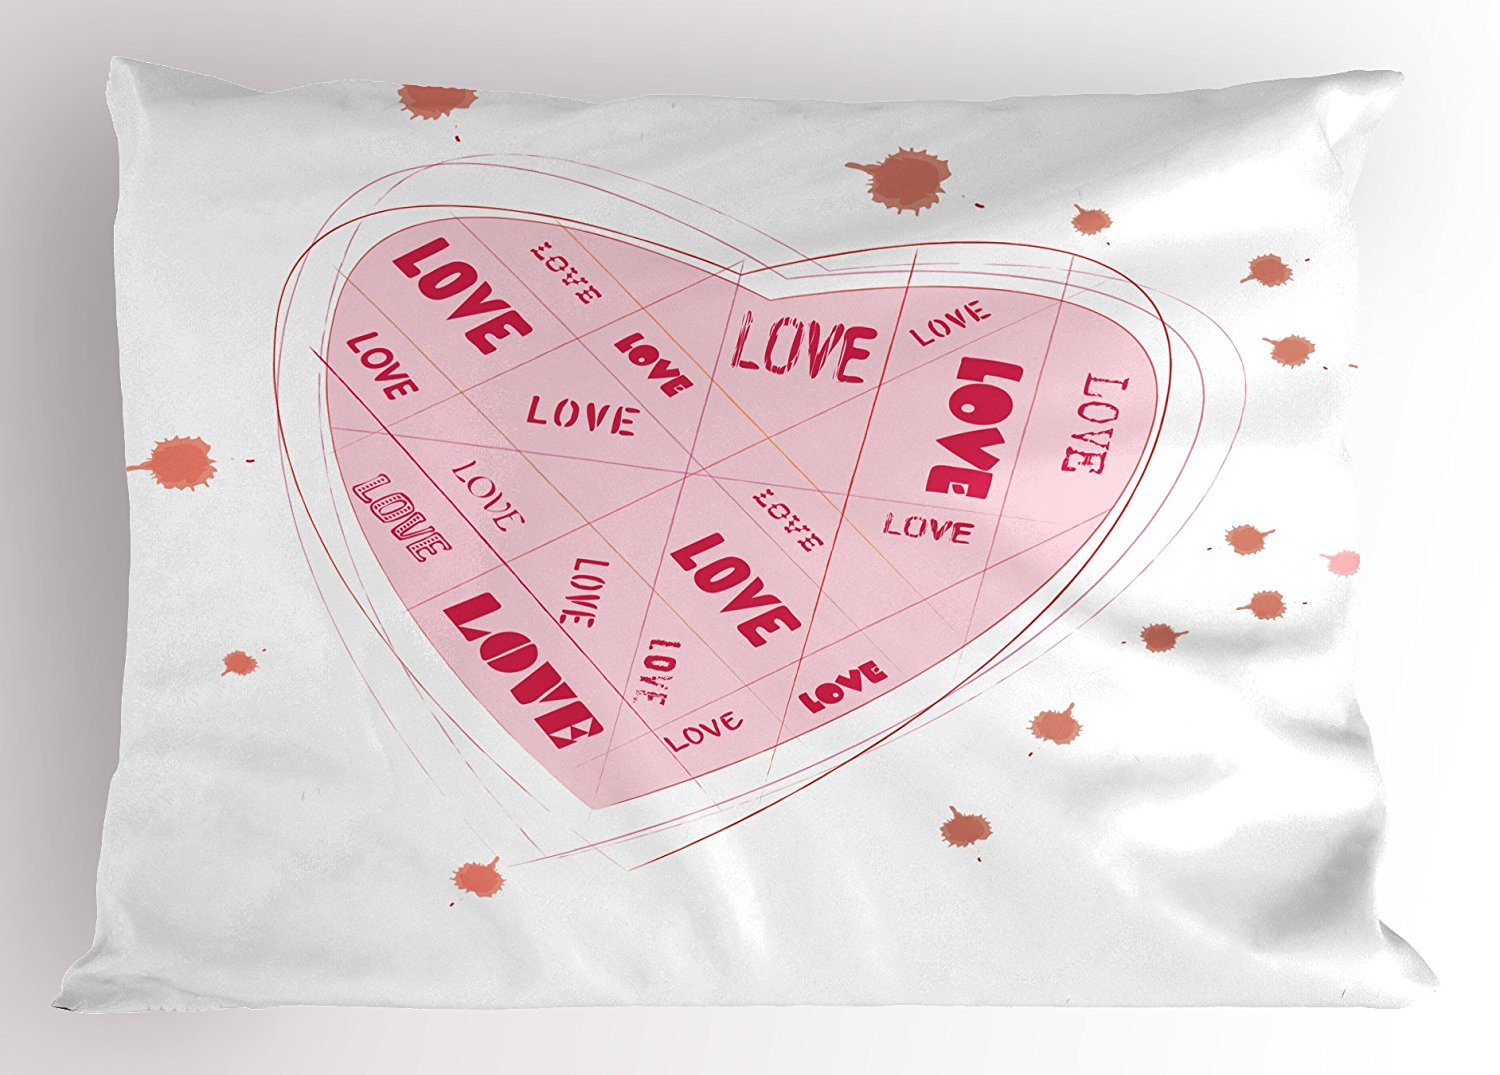 Ambesonne Love Pillow Sham, Valentine's Day Love Inscribed Heart Vintage Adoration Flirting Romance, Decorative Standard Queen Size Printed Pillowcase, 30 X 20 Inches, Pale Pink Vermilion Coral